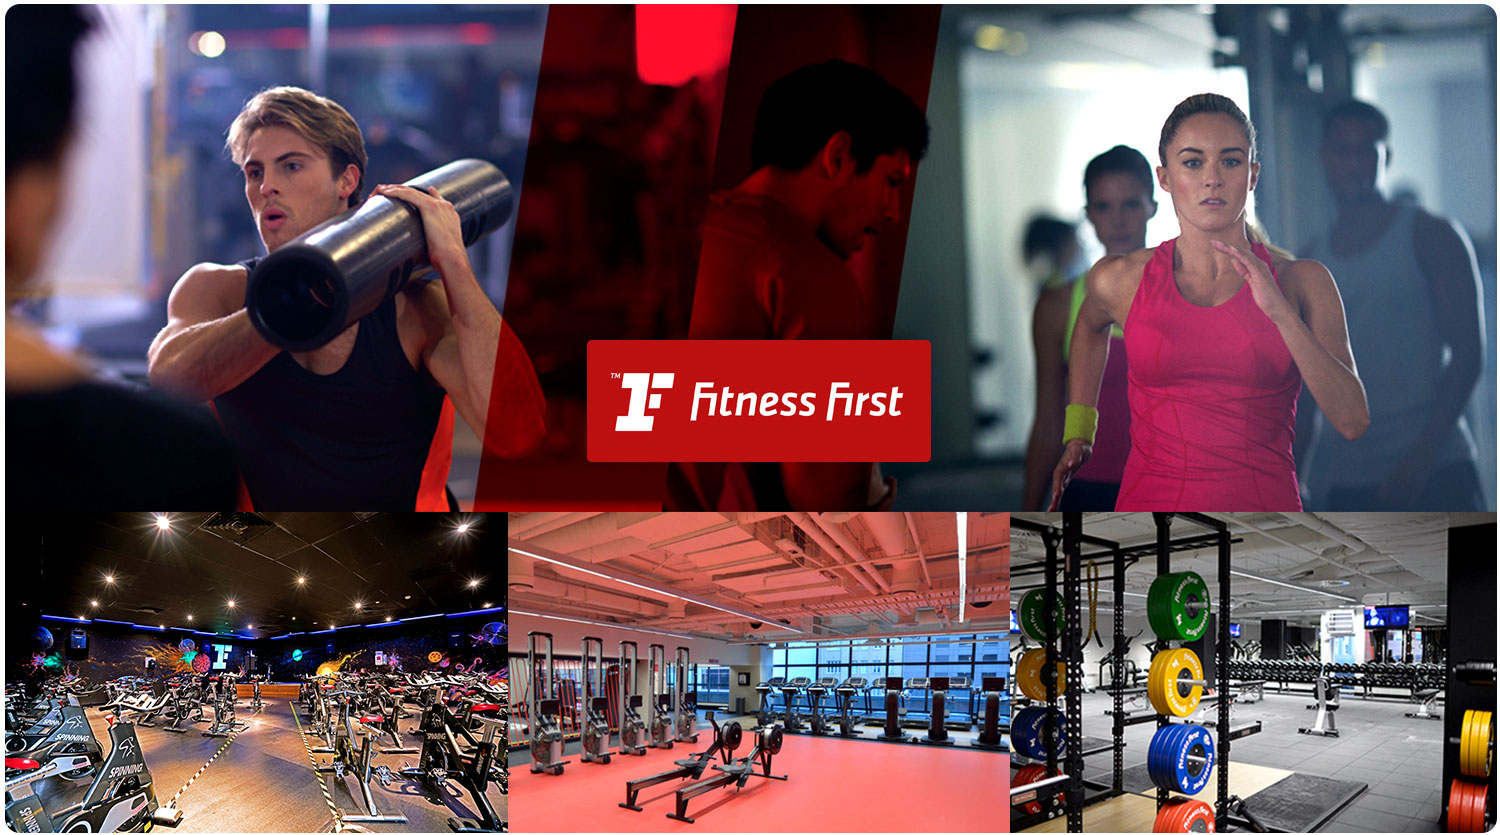 Start your Fitness Journey with Fitness First with only $14.95 for 14 days at Fitness First Potts Point NSW. Experience our first class gym and freestyle classes inc. Pilates, Yoga, HIIT, Les Mills and more. Take the first step with Fitness First Potts Point NSW.